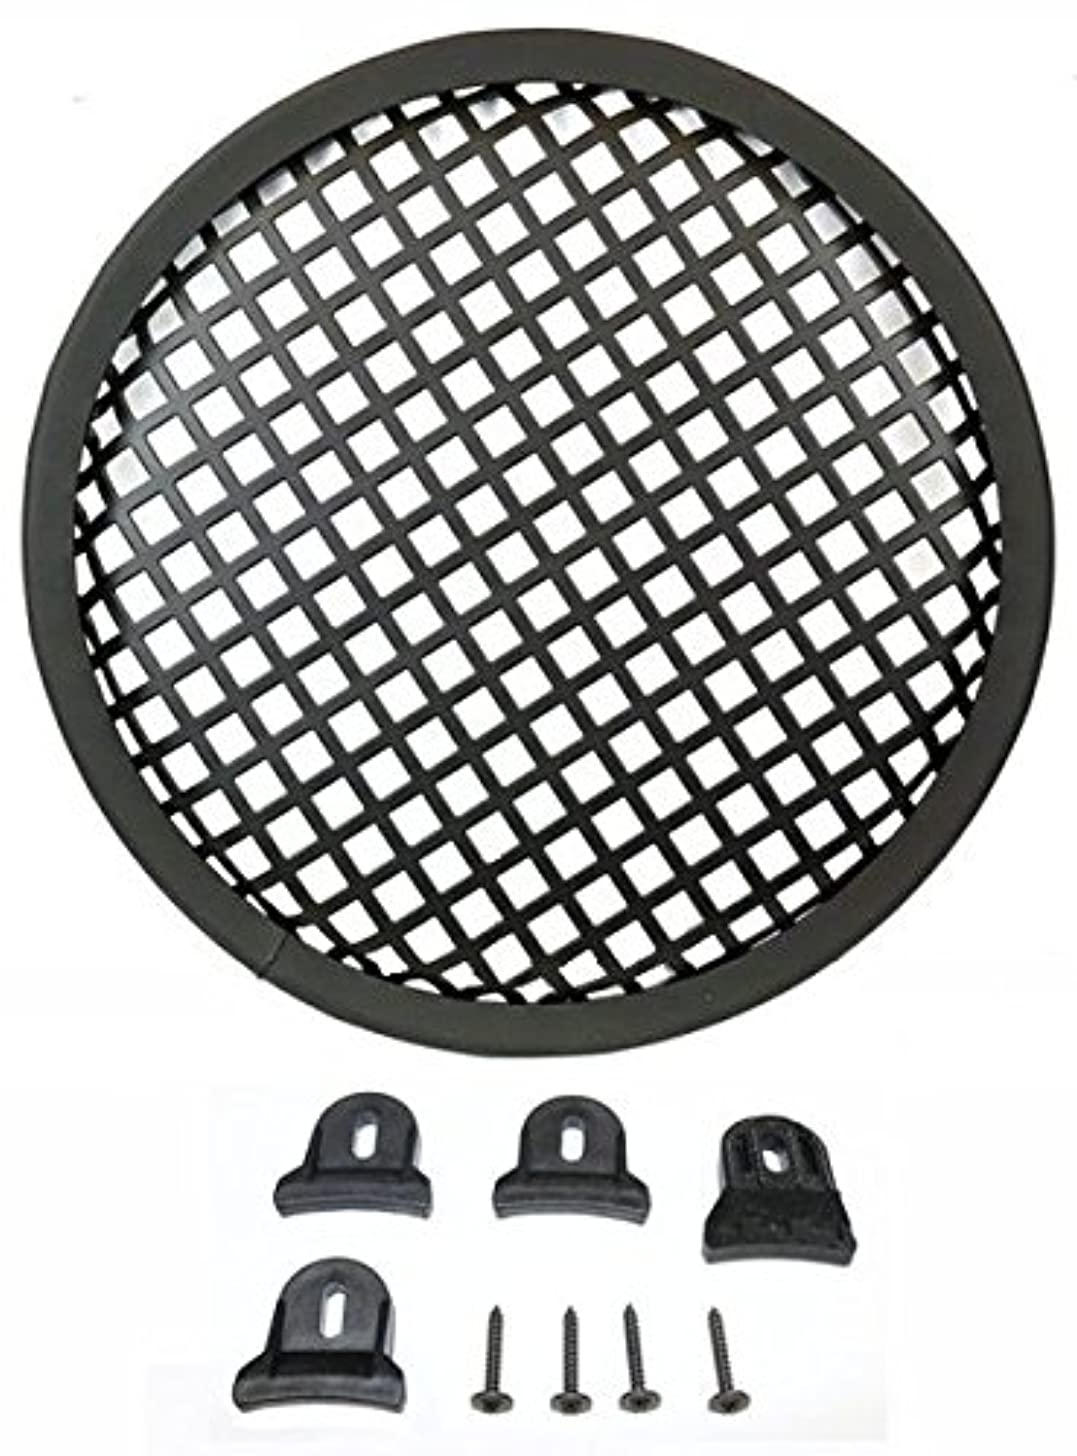 Durable 8-in Diameter Steel Monster Mesh Grill For 8-in Woofers With Hardware Steel Waffle Mesh Rubber Edge Includes Four Slip Resistant Plastic Grill Clamps And Appropriate Screws DEEJAYLED TBH8GR